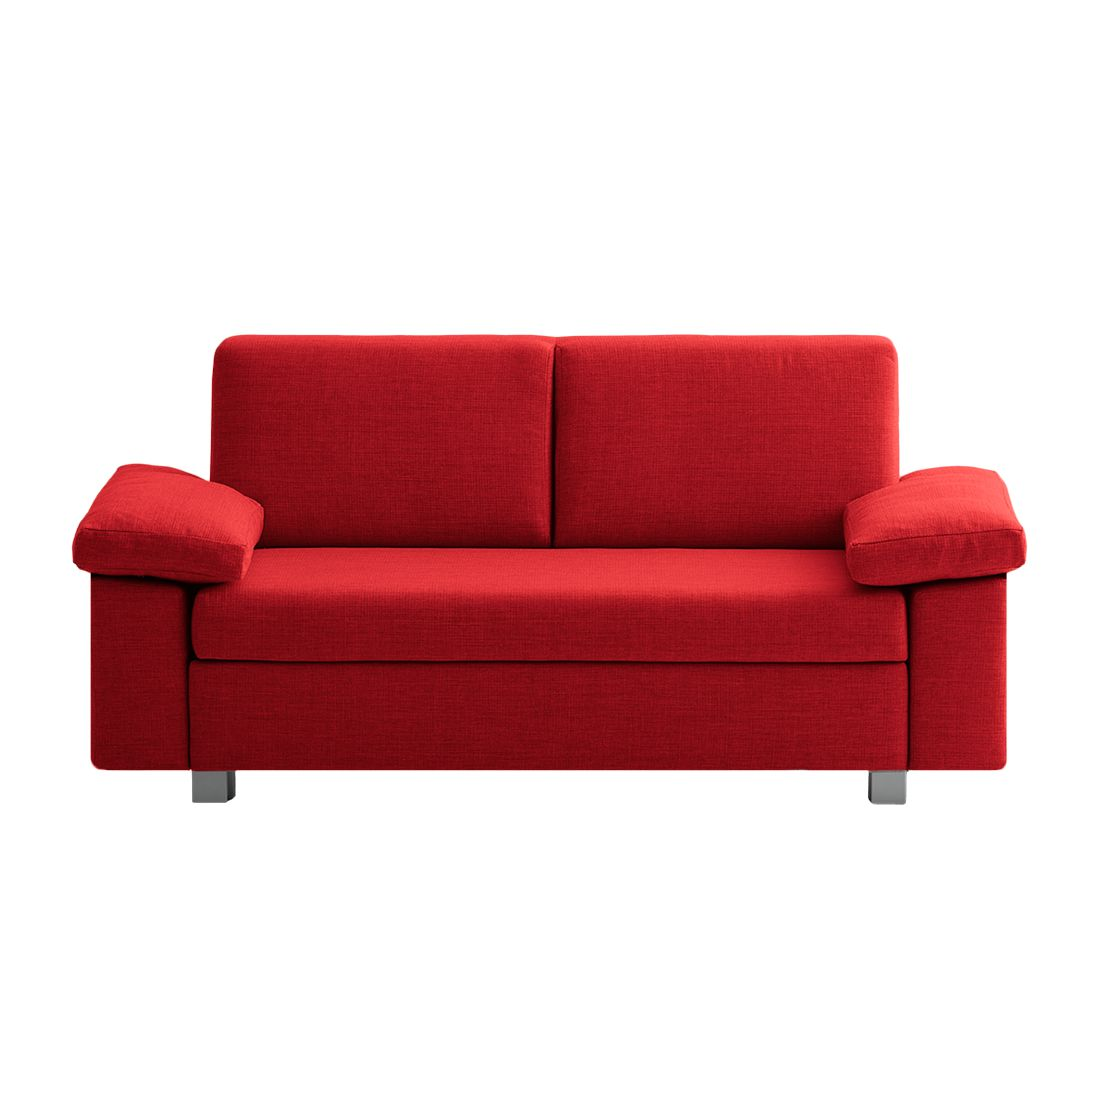 Canapé convertible Plaza - Tissu - Rouge - 172 cm - Types d'accoudoir rabattable, chillout by Franz